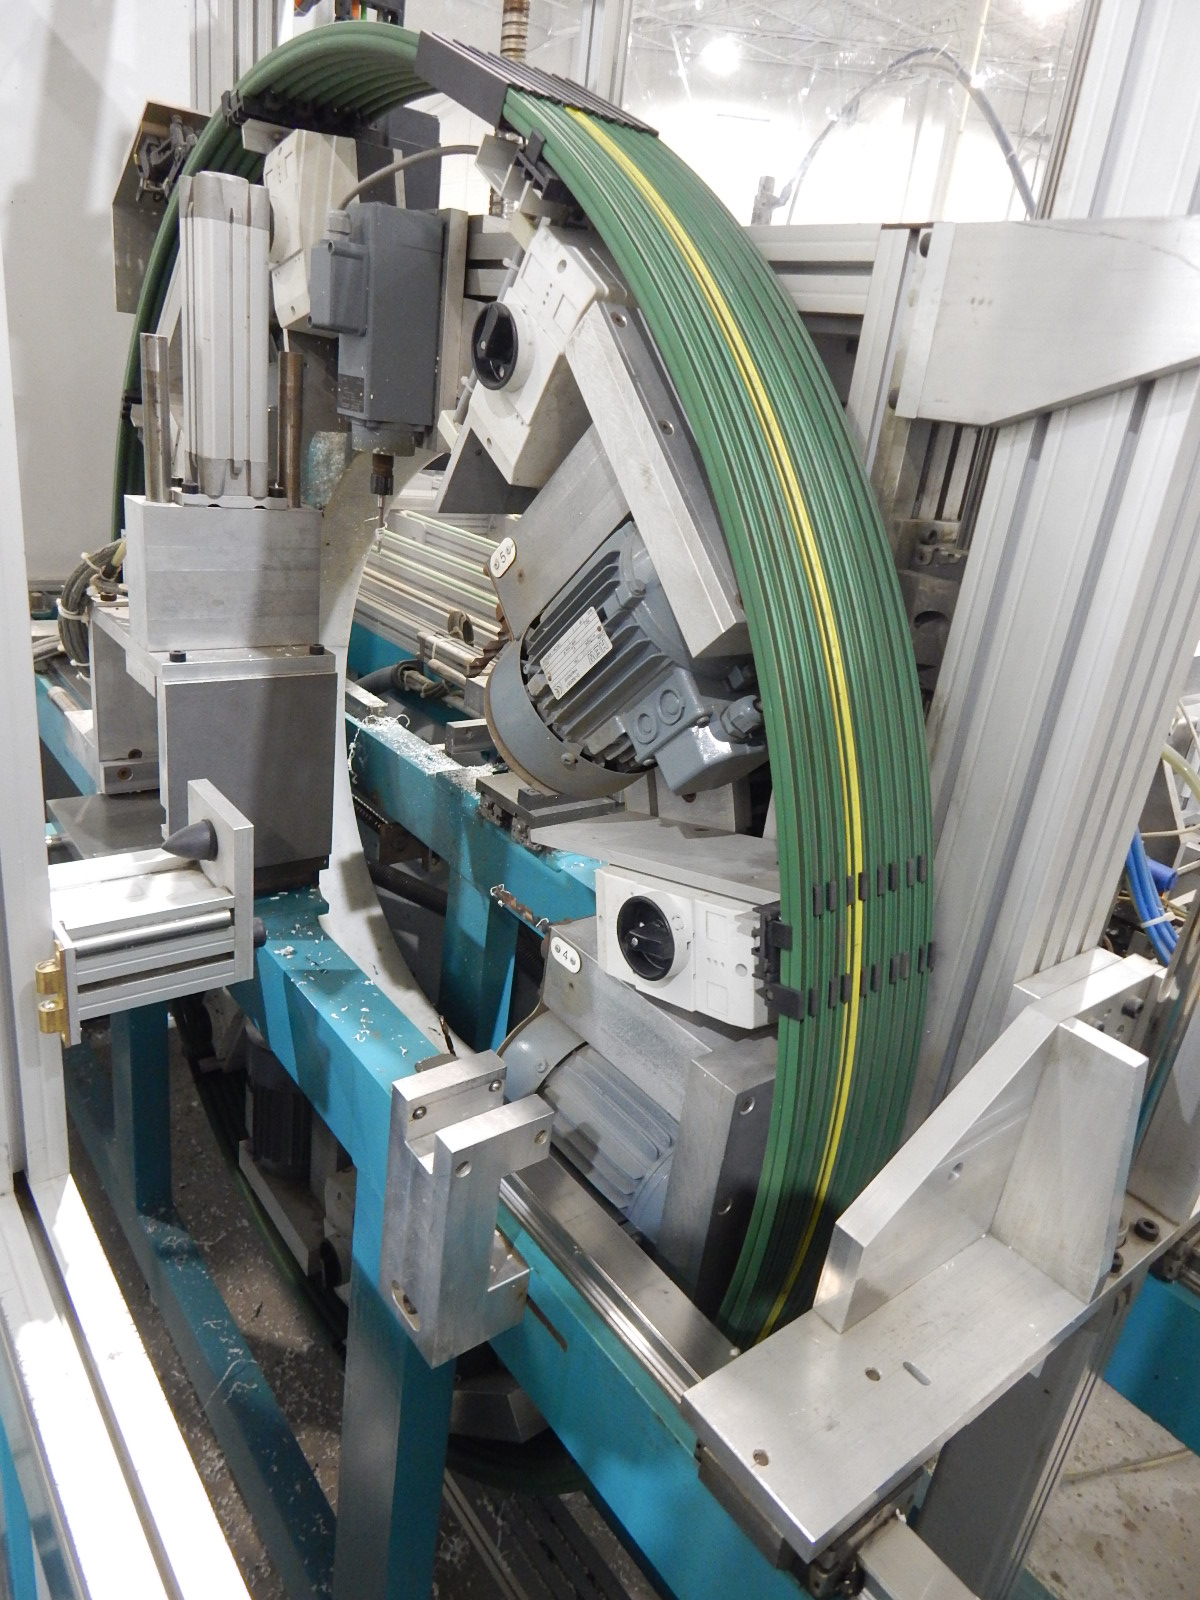 THORWESTERN (2008) PBZ-3 CNC PROFILE MACHINING CENTER WITH WINDOWS PC BASED AR010 TOUCH SCREEN CNC - Image 5 of 9